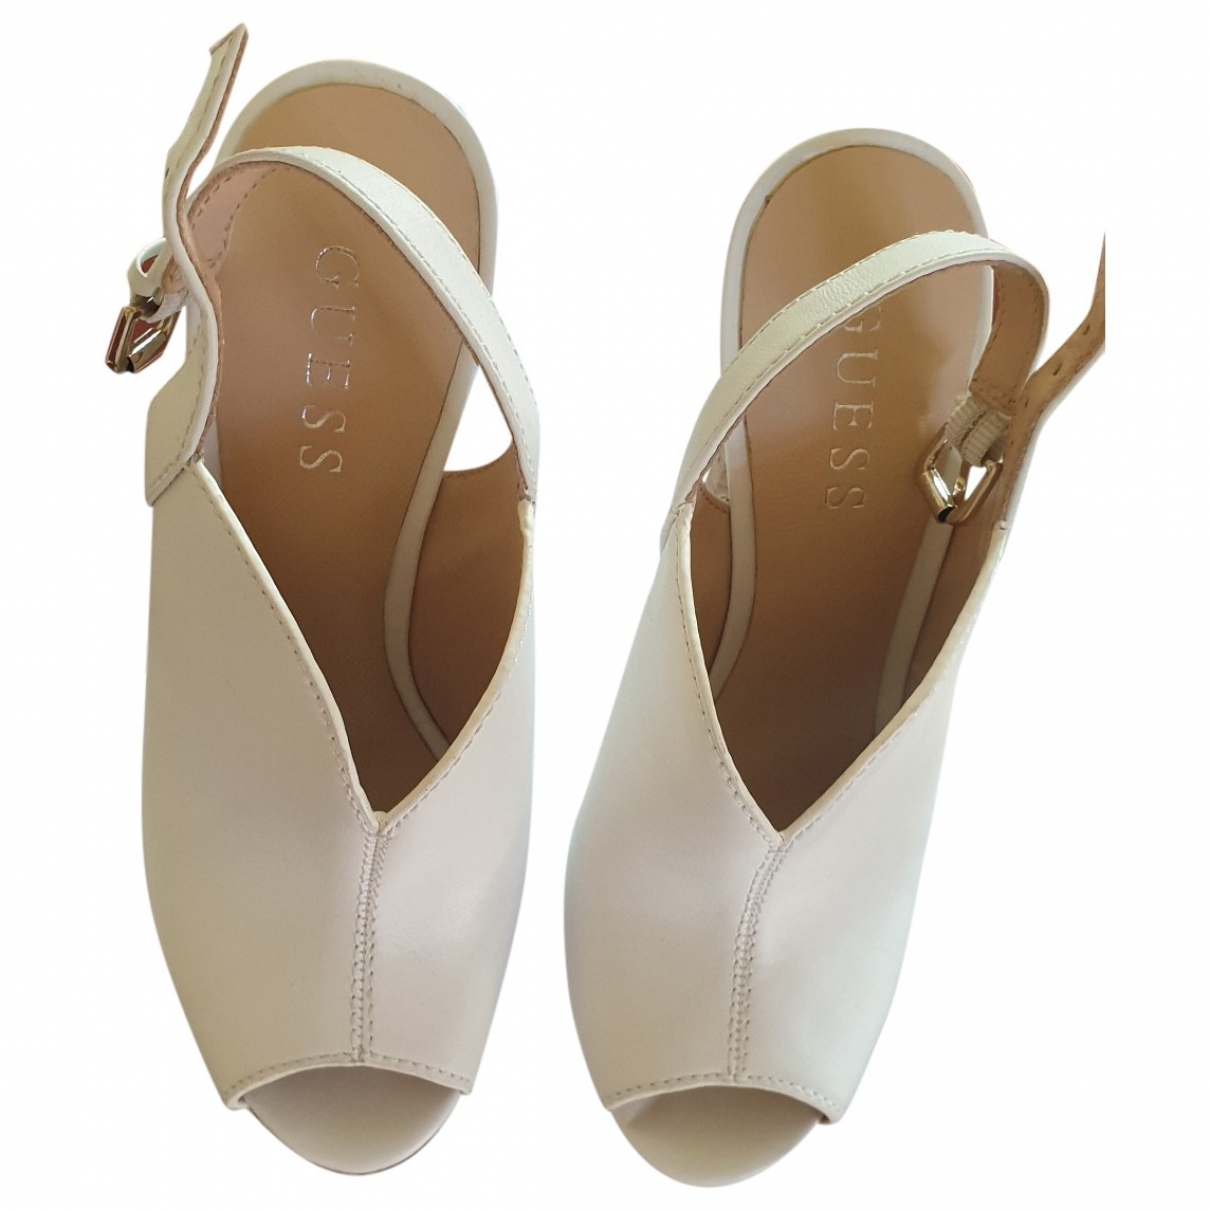 Guess \N White Leather Heels for Women 35 EU